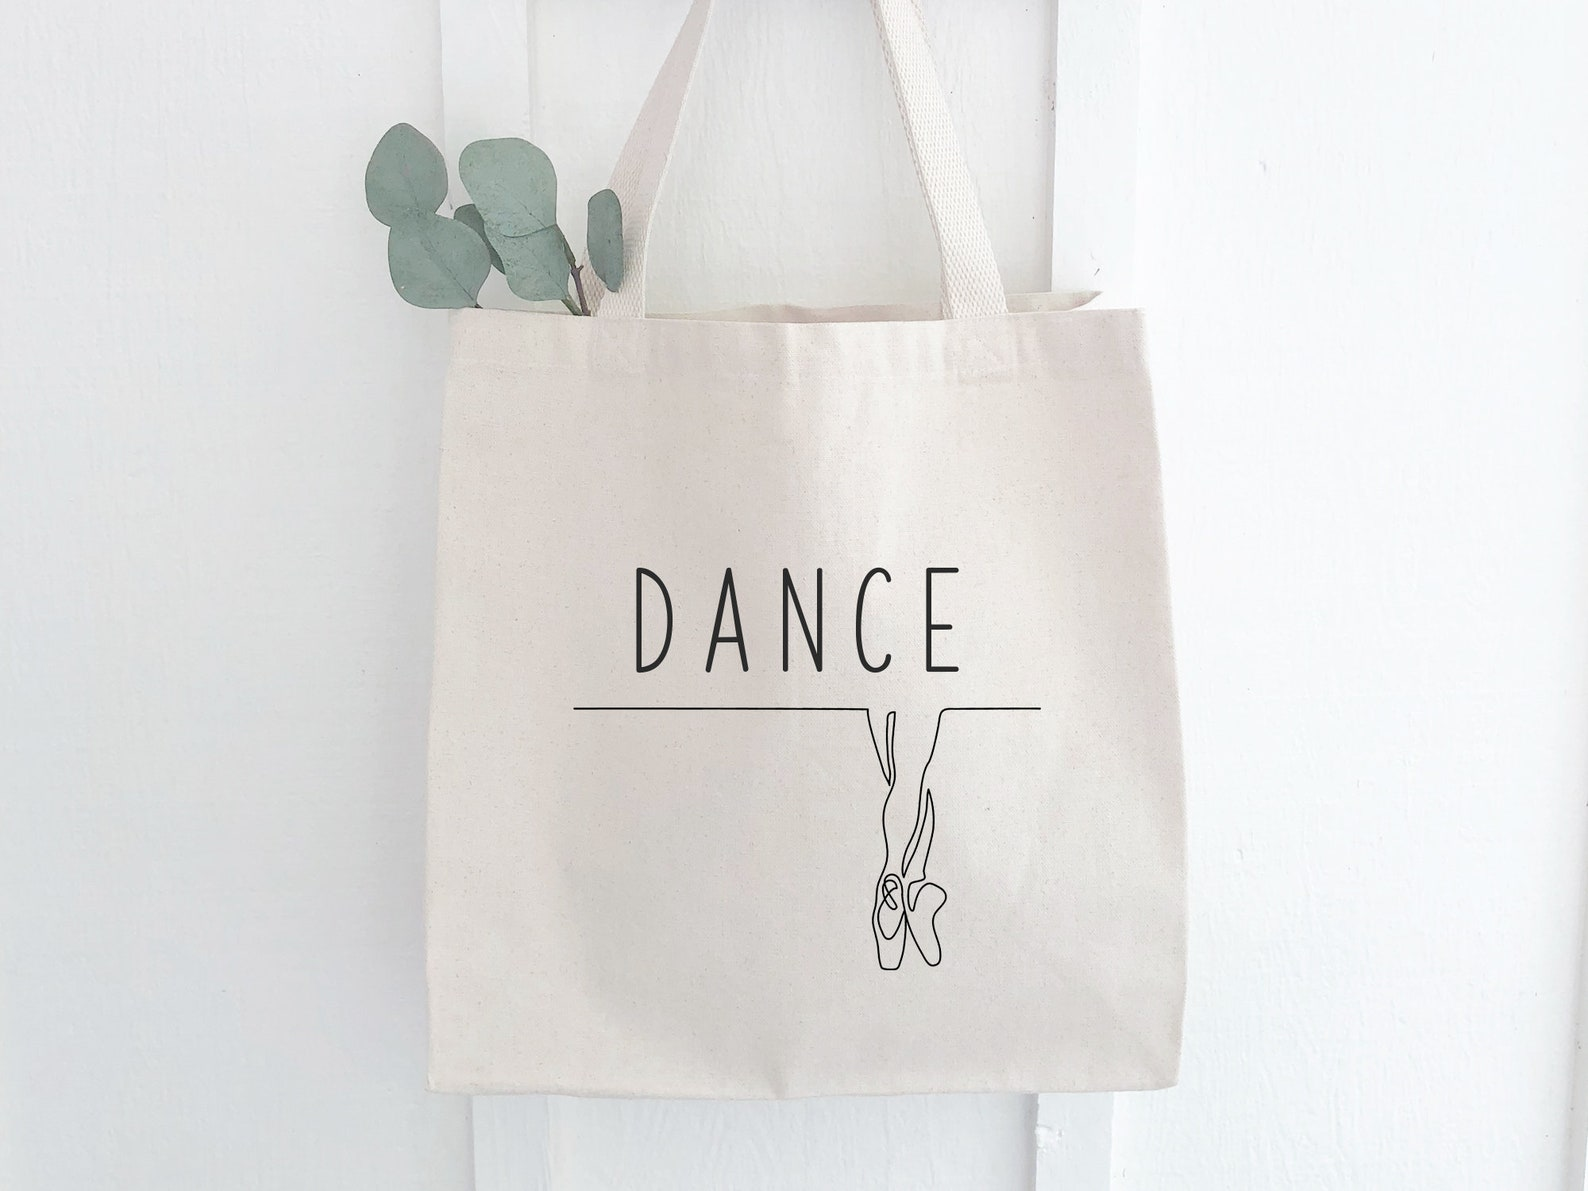 personalized dance bag with any name. roomy durable carrying bag for ballet shoes and dance clothes.